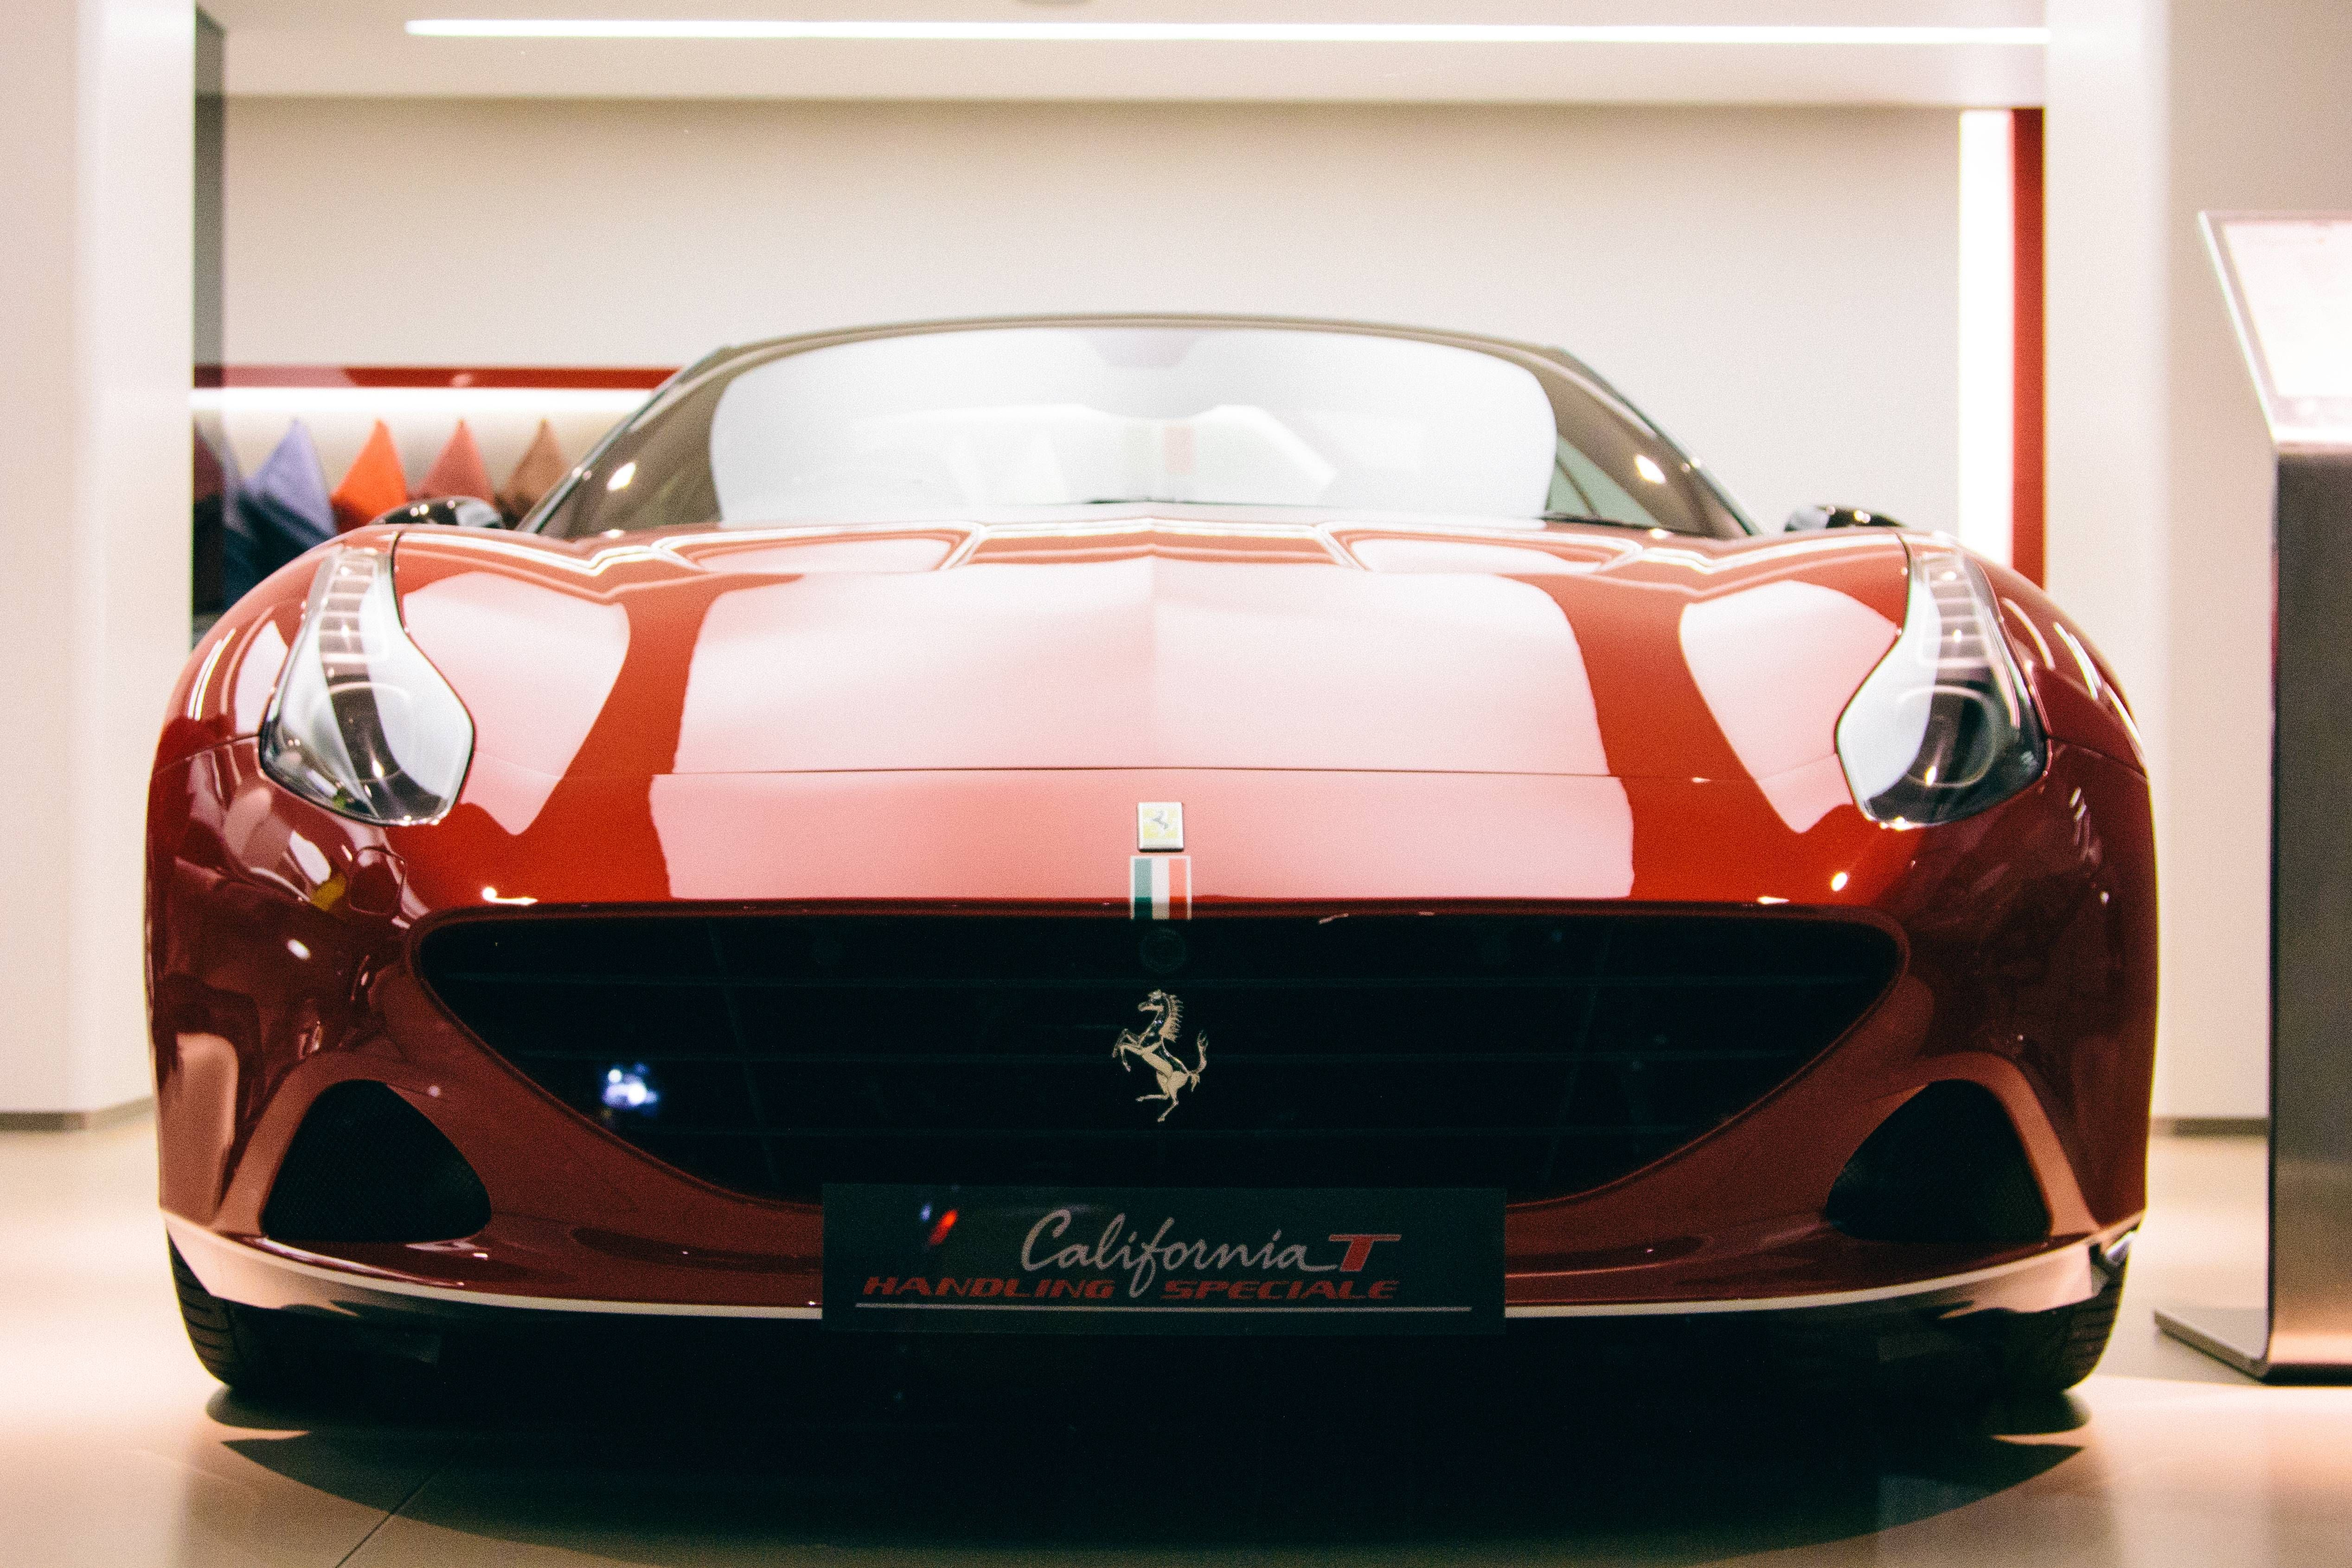 Shiny Ferrari California T Hs At H R Owen Ferrari In London